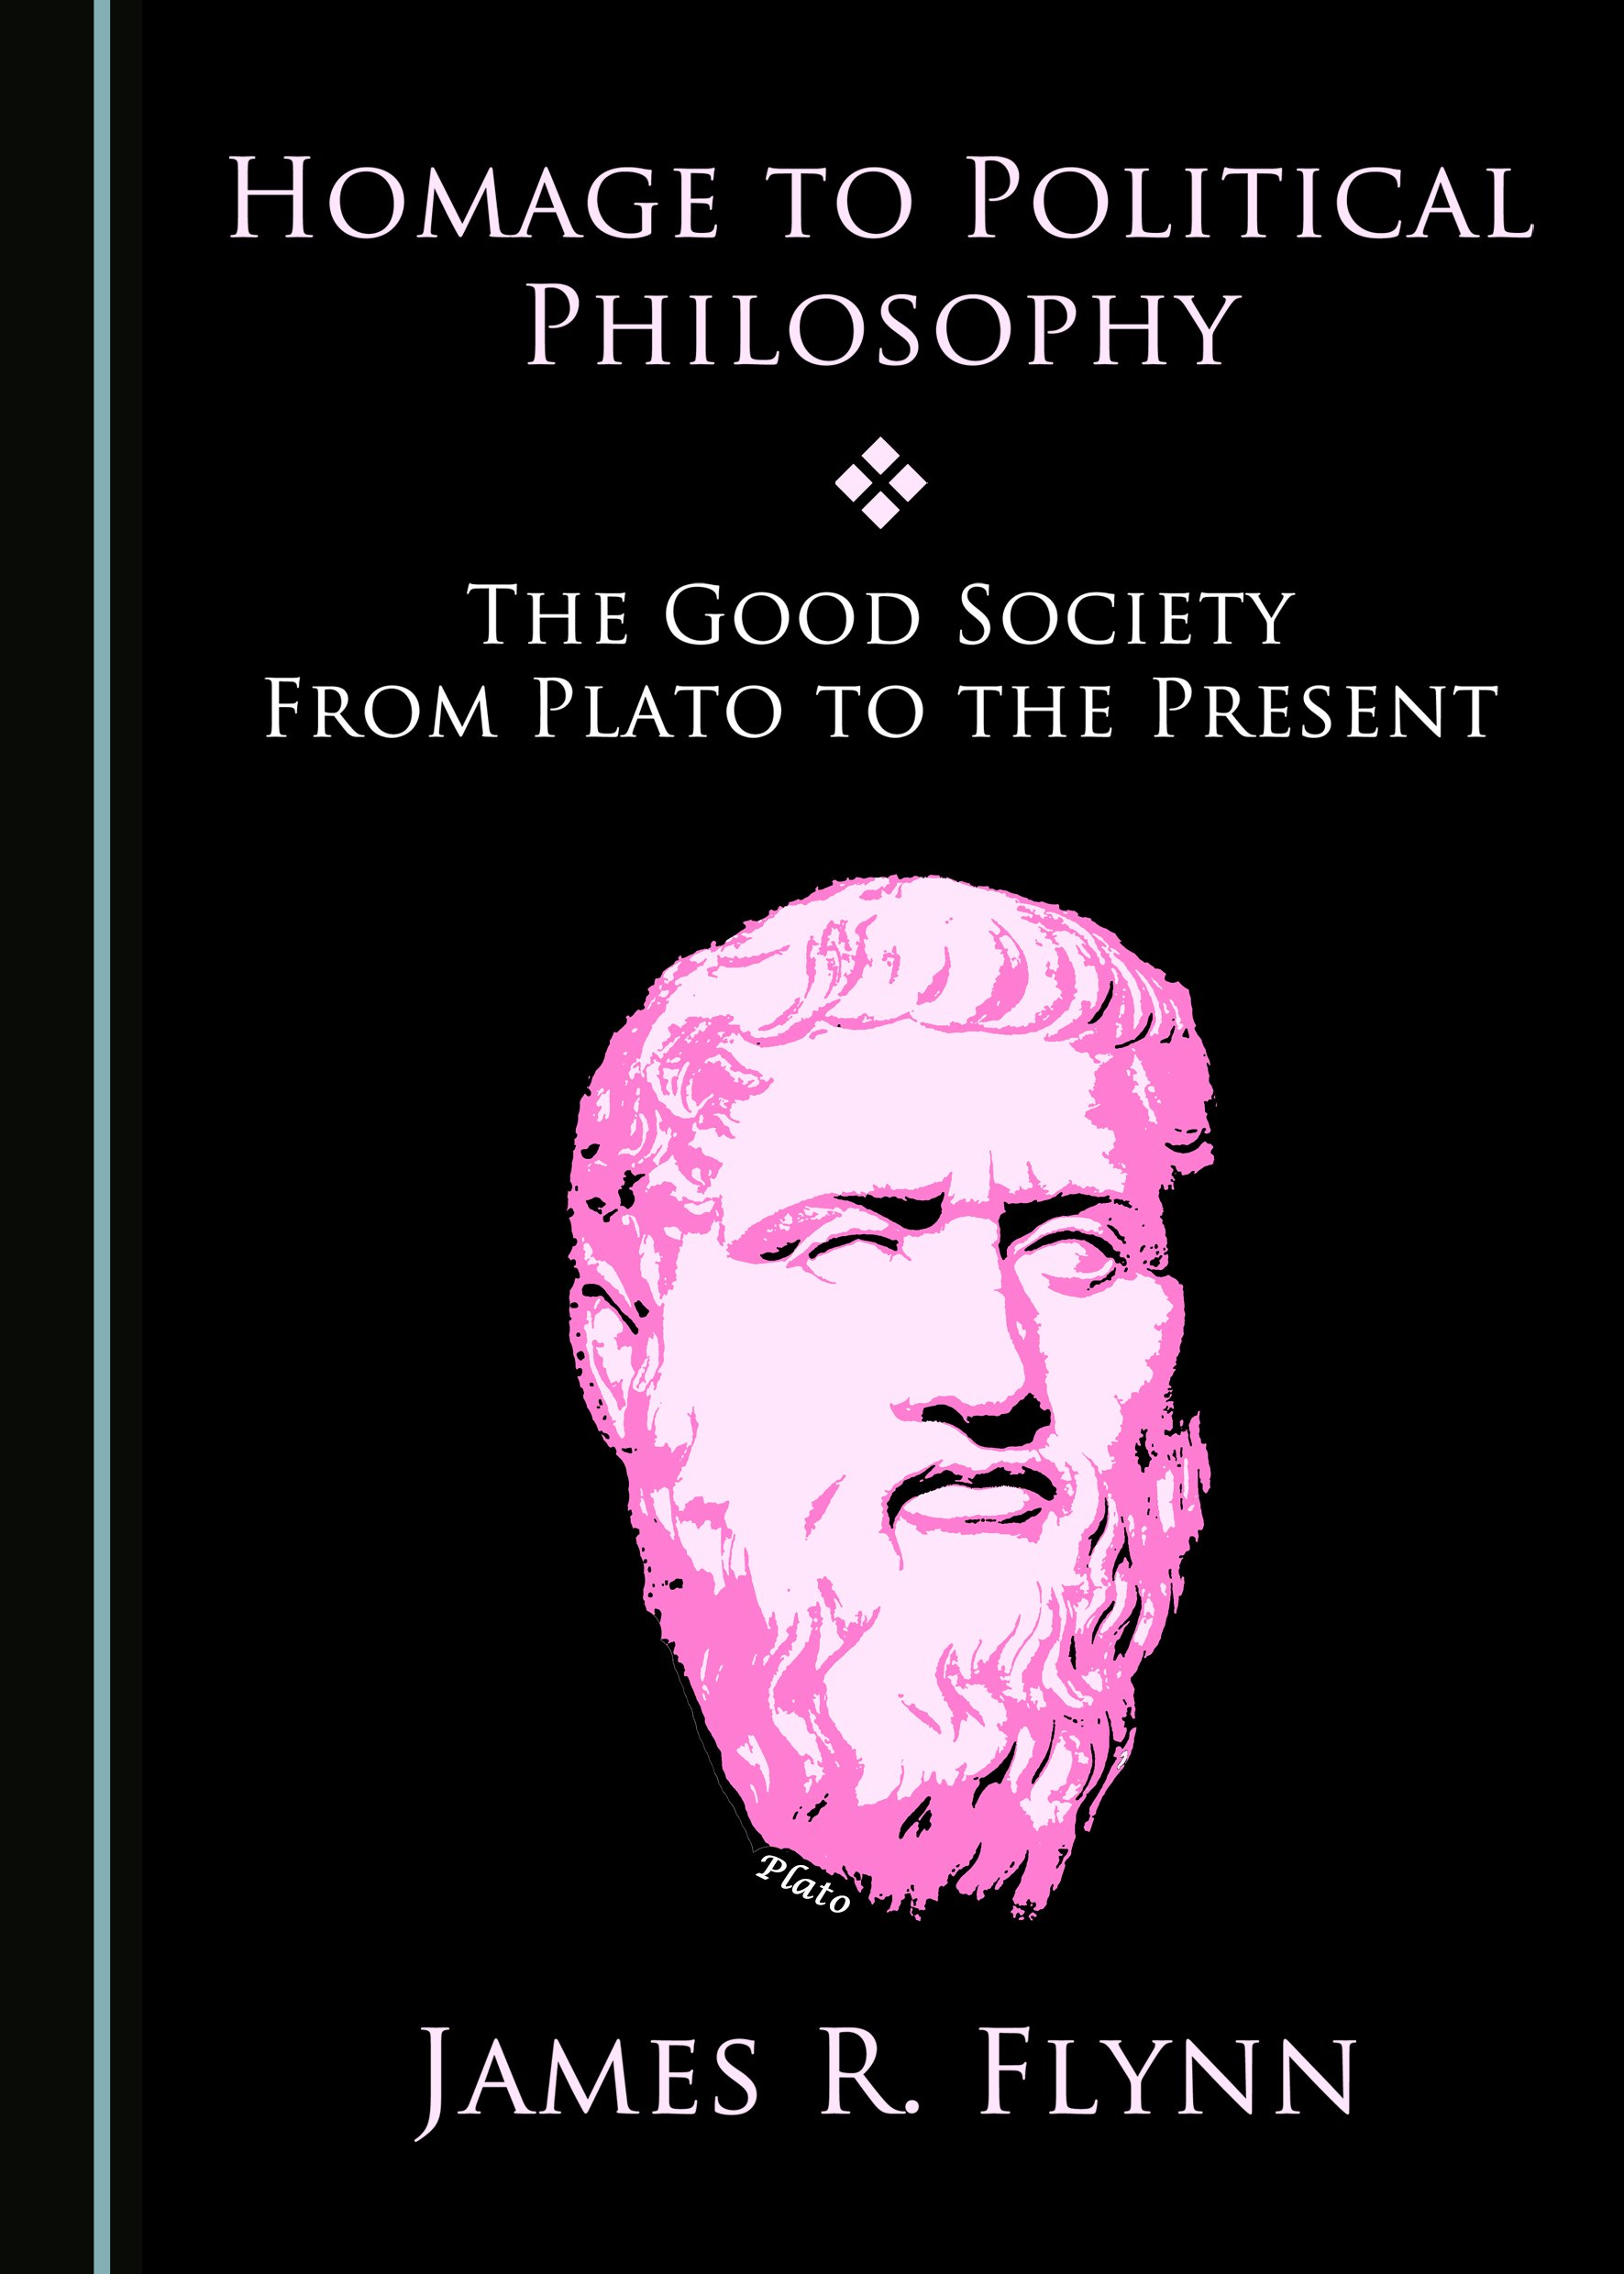 Homage to Political Philosophy: The Good Society from Plato to the Present